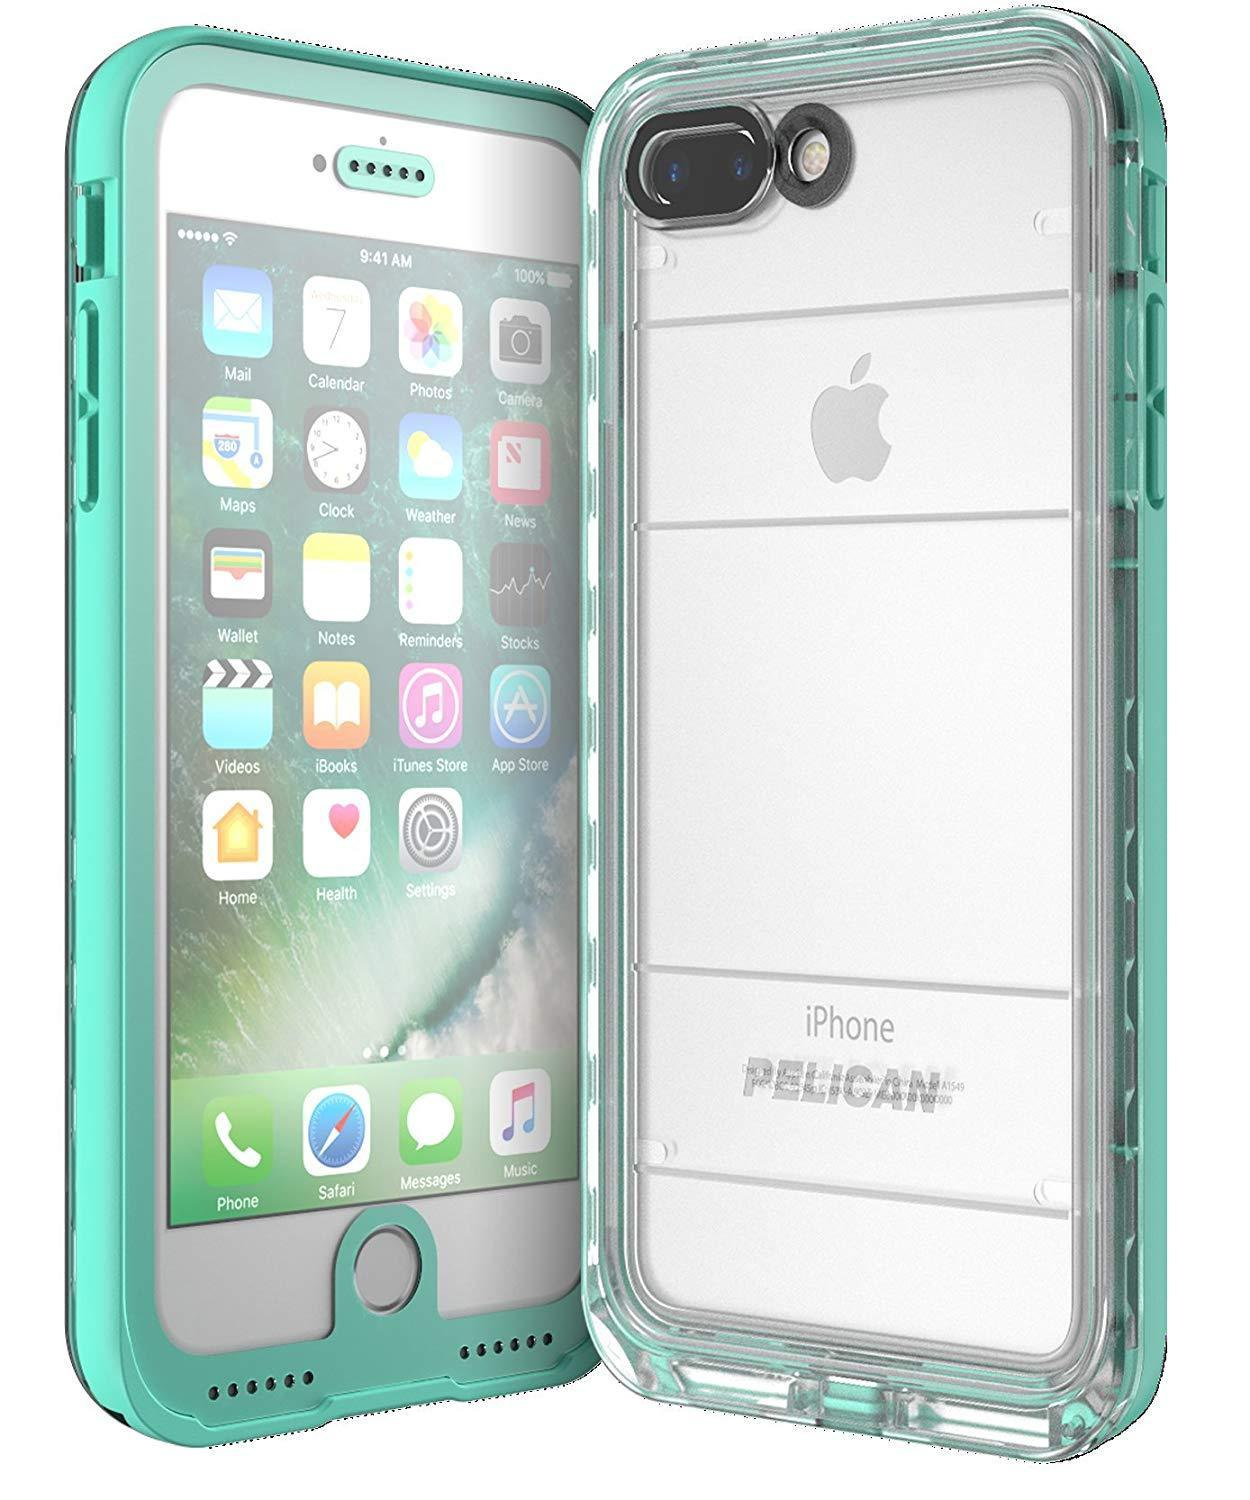 separation shoes 7d93e a5a25 Pelican Marine Total Protection Case for iPhone 7 Plus/ 8 Plus - Teal /  Clear